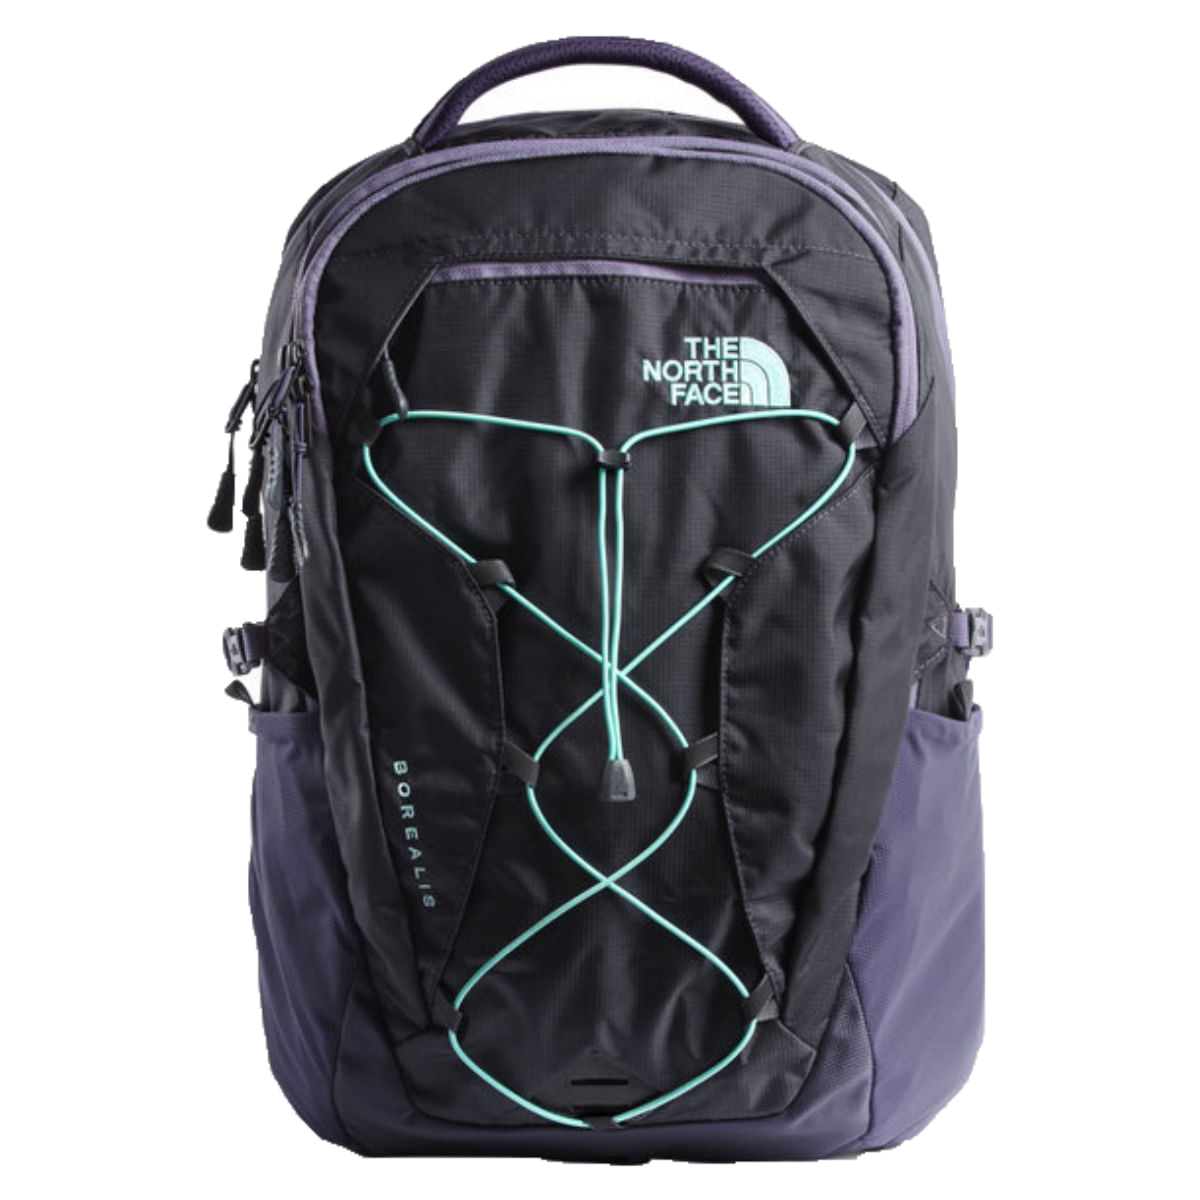 d546879b1 The North Face Borealis Backpack - Women's - Als.com | Every Sport. Every  Season.